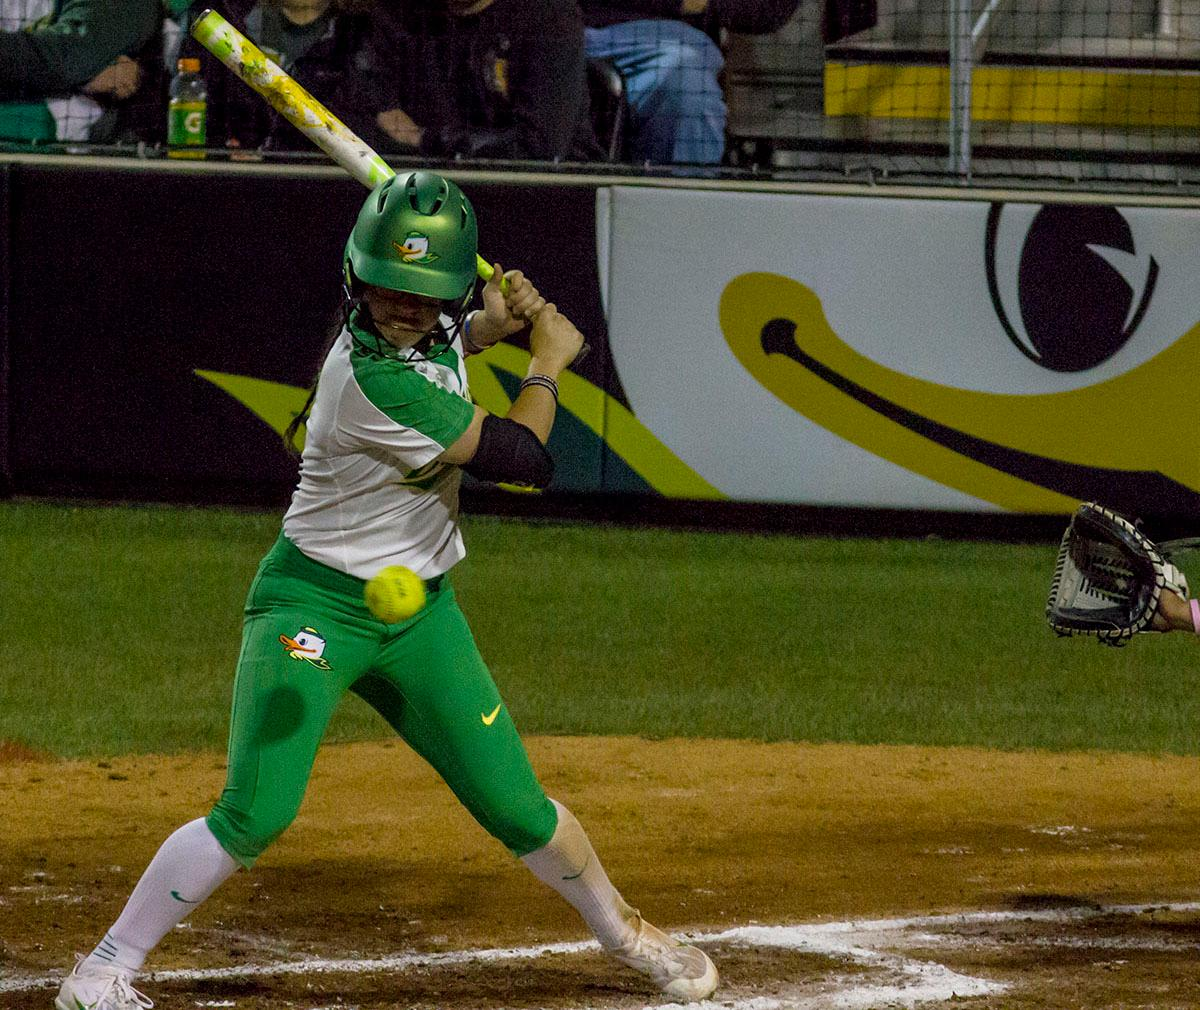 Ducks right-fielder Danica Mercado (#2) takes a pitch. The No. 3 Oregon Ducks defeated the University of Illinois Chicago Flames 13-0 with the run-rule on Saturday night at Jane Sanders Stadium. The Ducks scored in every inning and then scored nine runs at the bottom of the fourth. The Oregon Ducks are now 22-0 in NCAA regional games. The Oregon Ducks play Wisconsin next on Saturday, May 20 at 2pm at Jane Sanders Stadium. Photo by Aaron Alter, Oregon News Lab